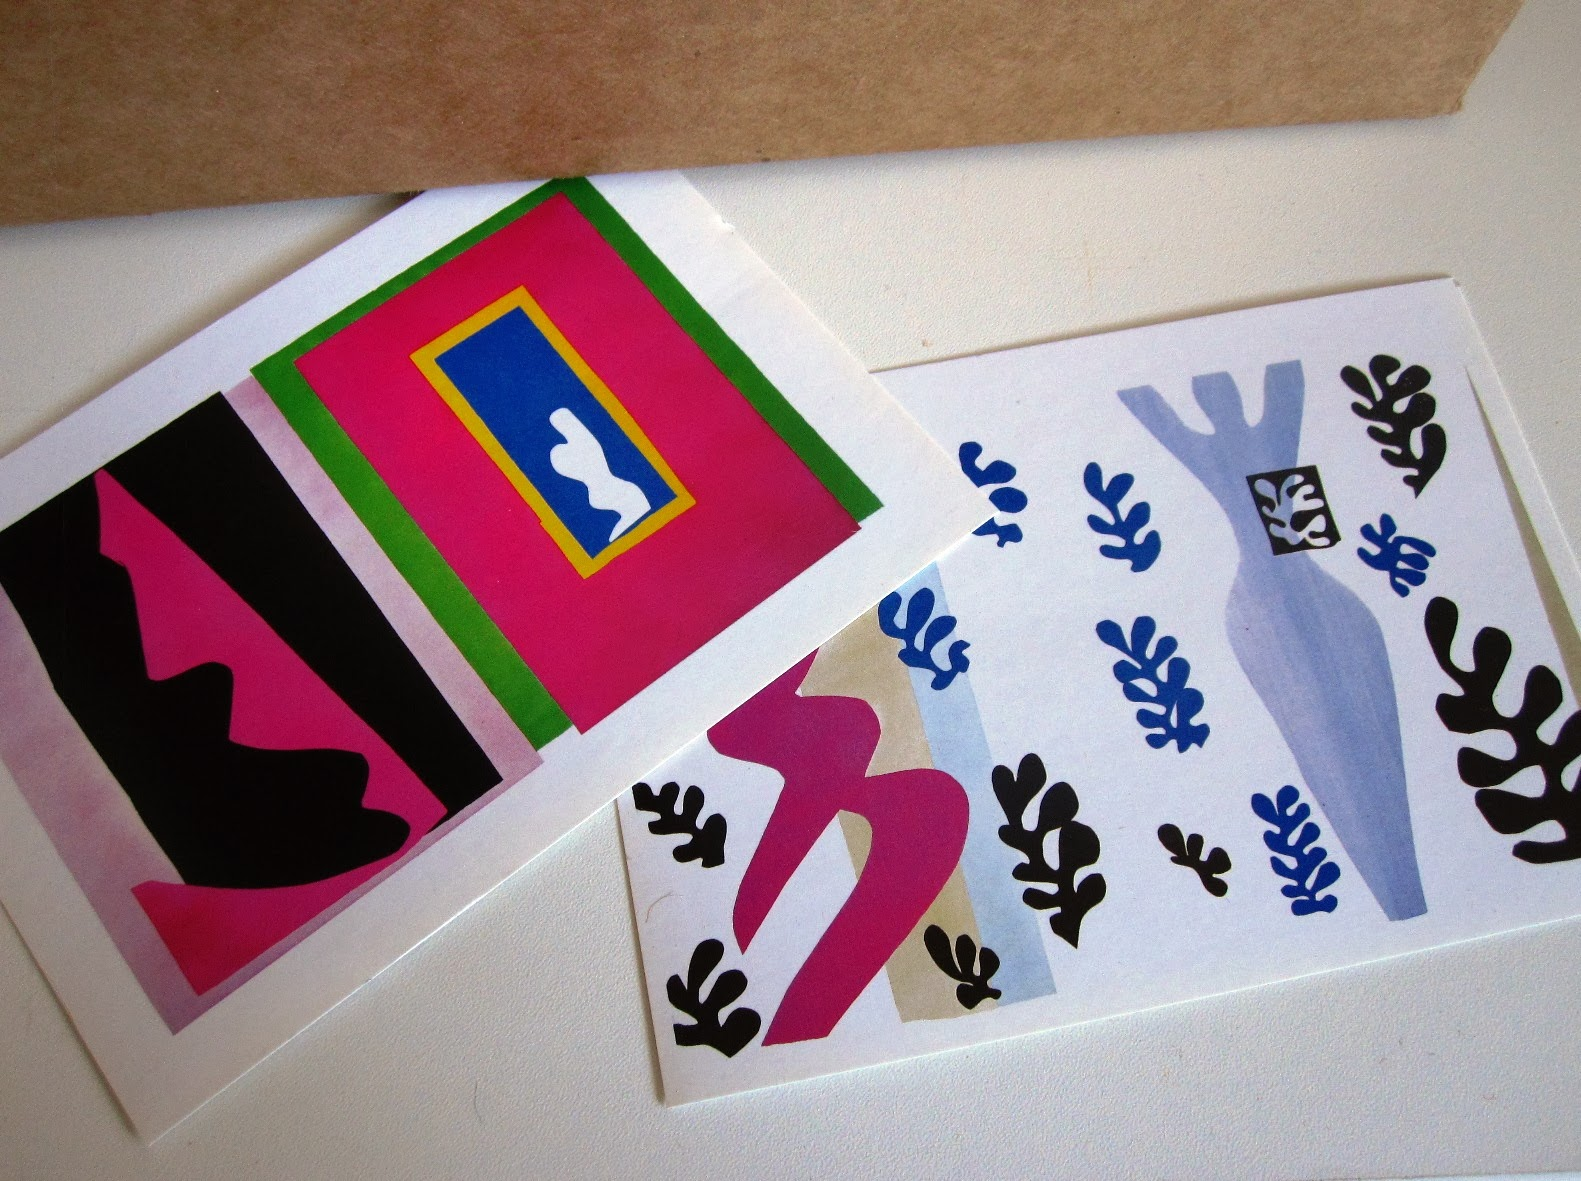 Two post cards with images by Matisse on them